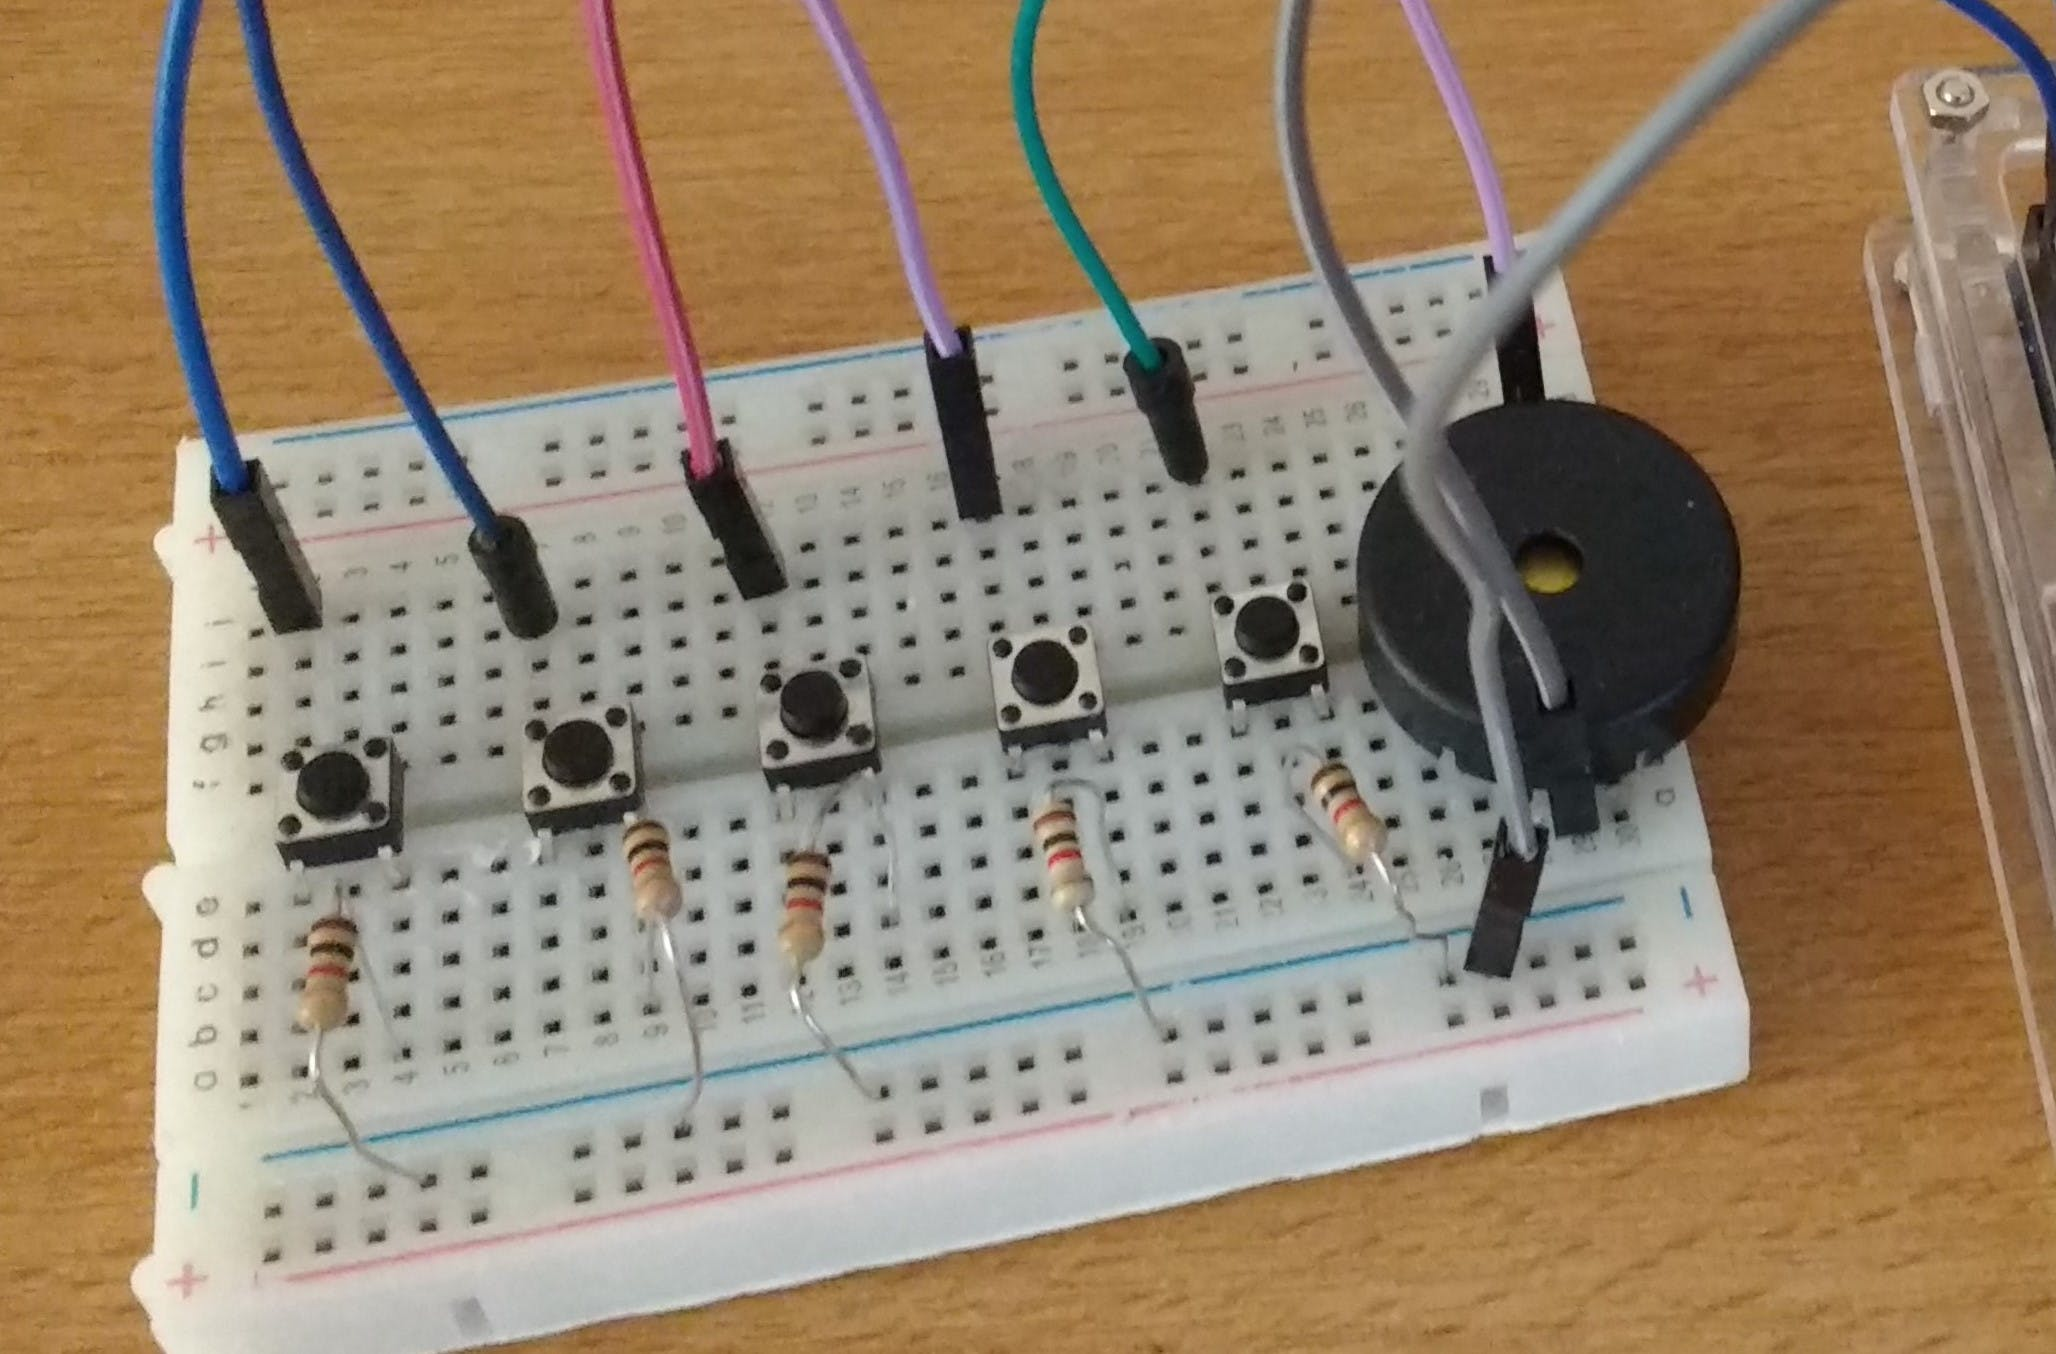 How the finished breadboard looks